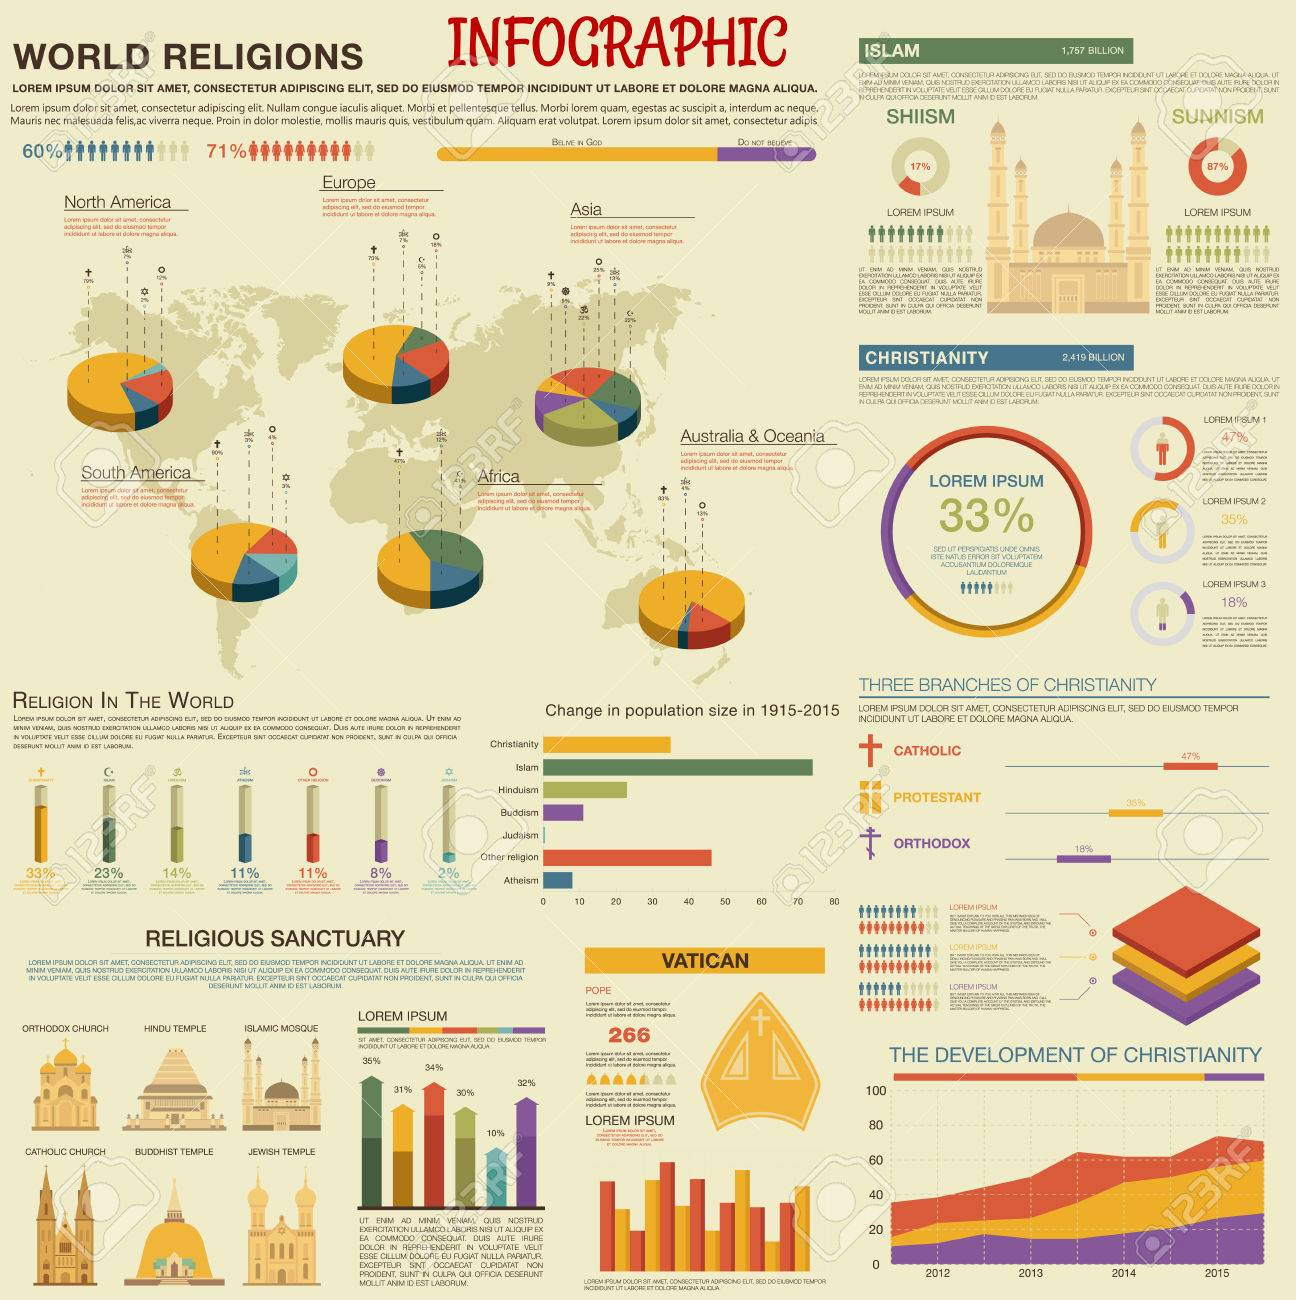 Retro stylized world religions infographic design template with pie charts and world map Standard-Bild - 57807165